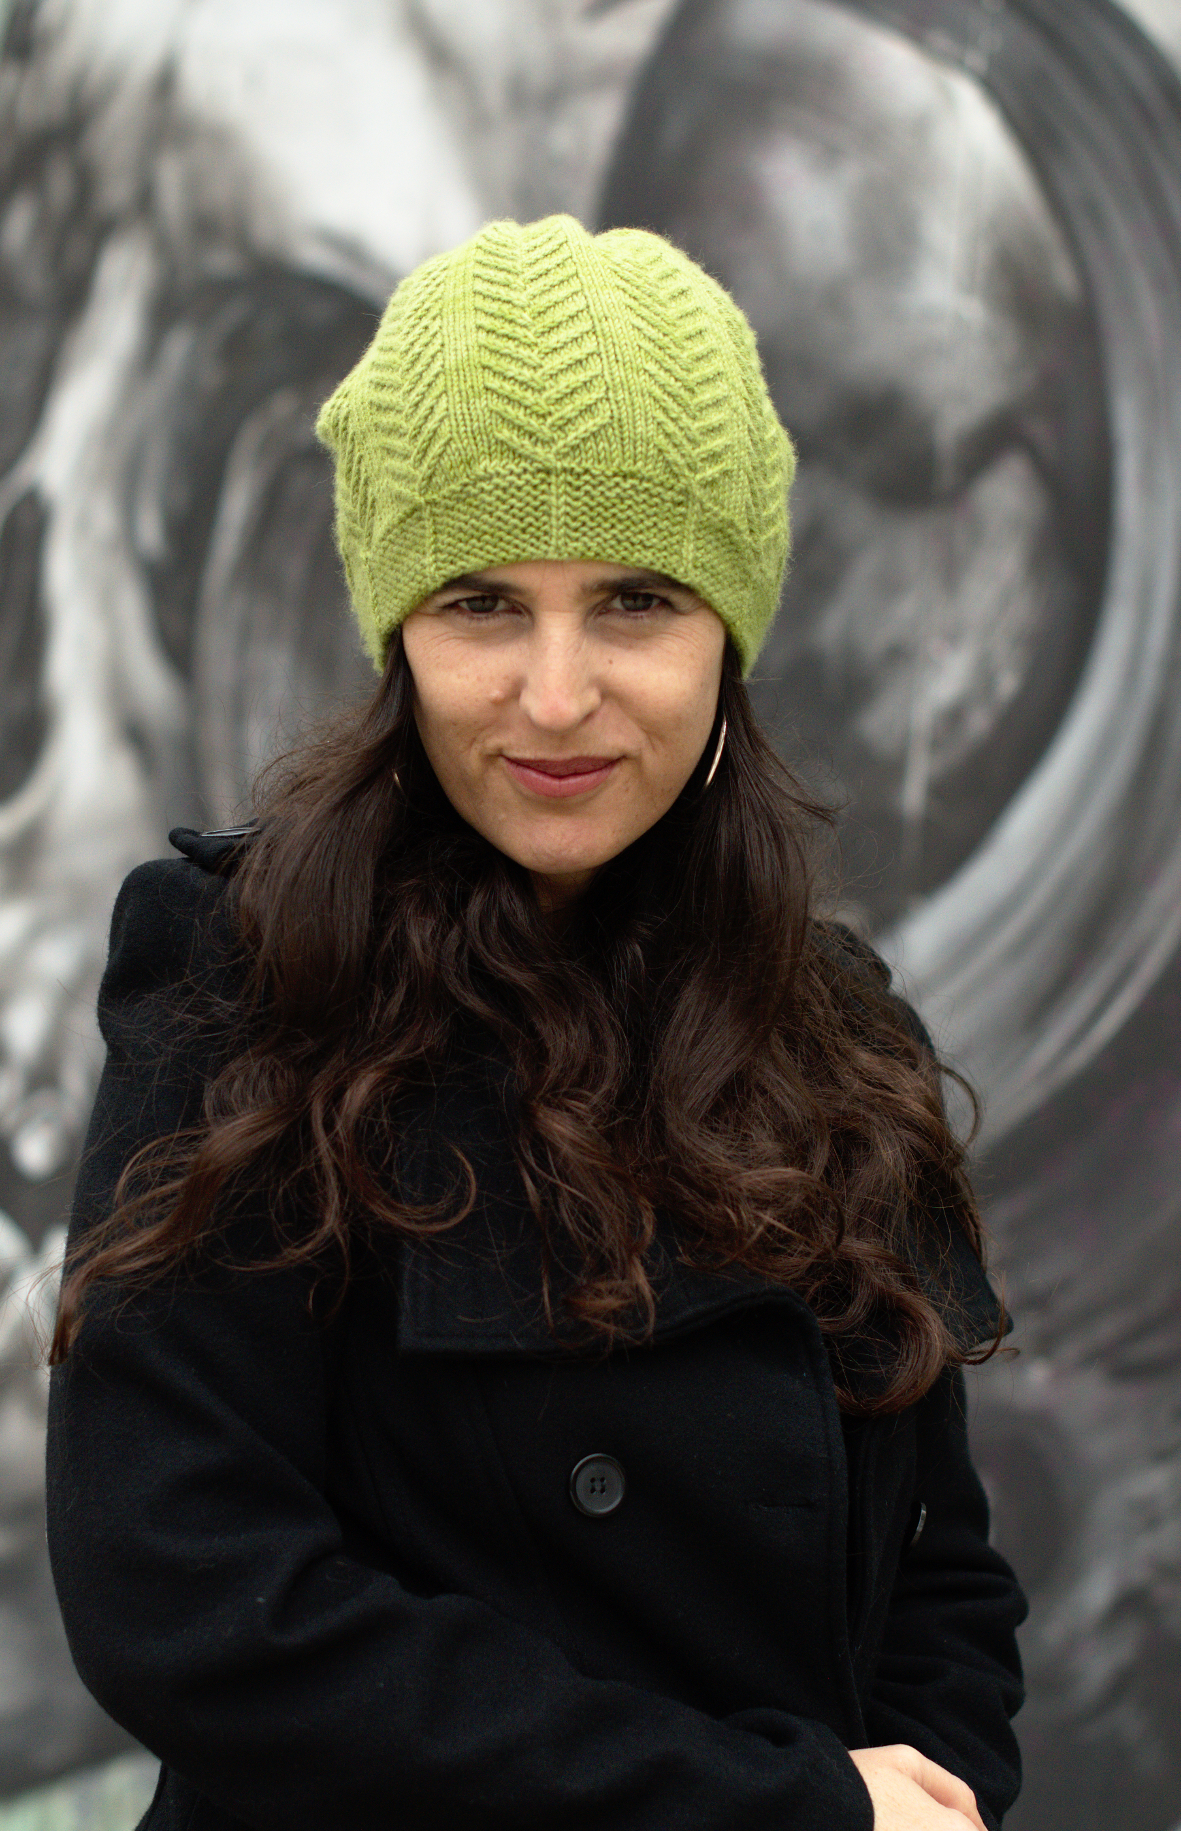 Pinua slouchy Hat knitting pattern